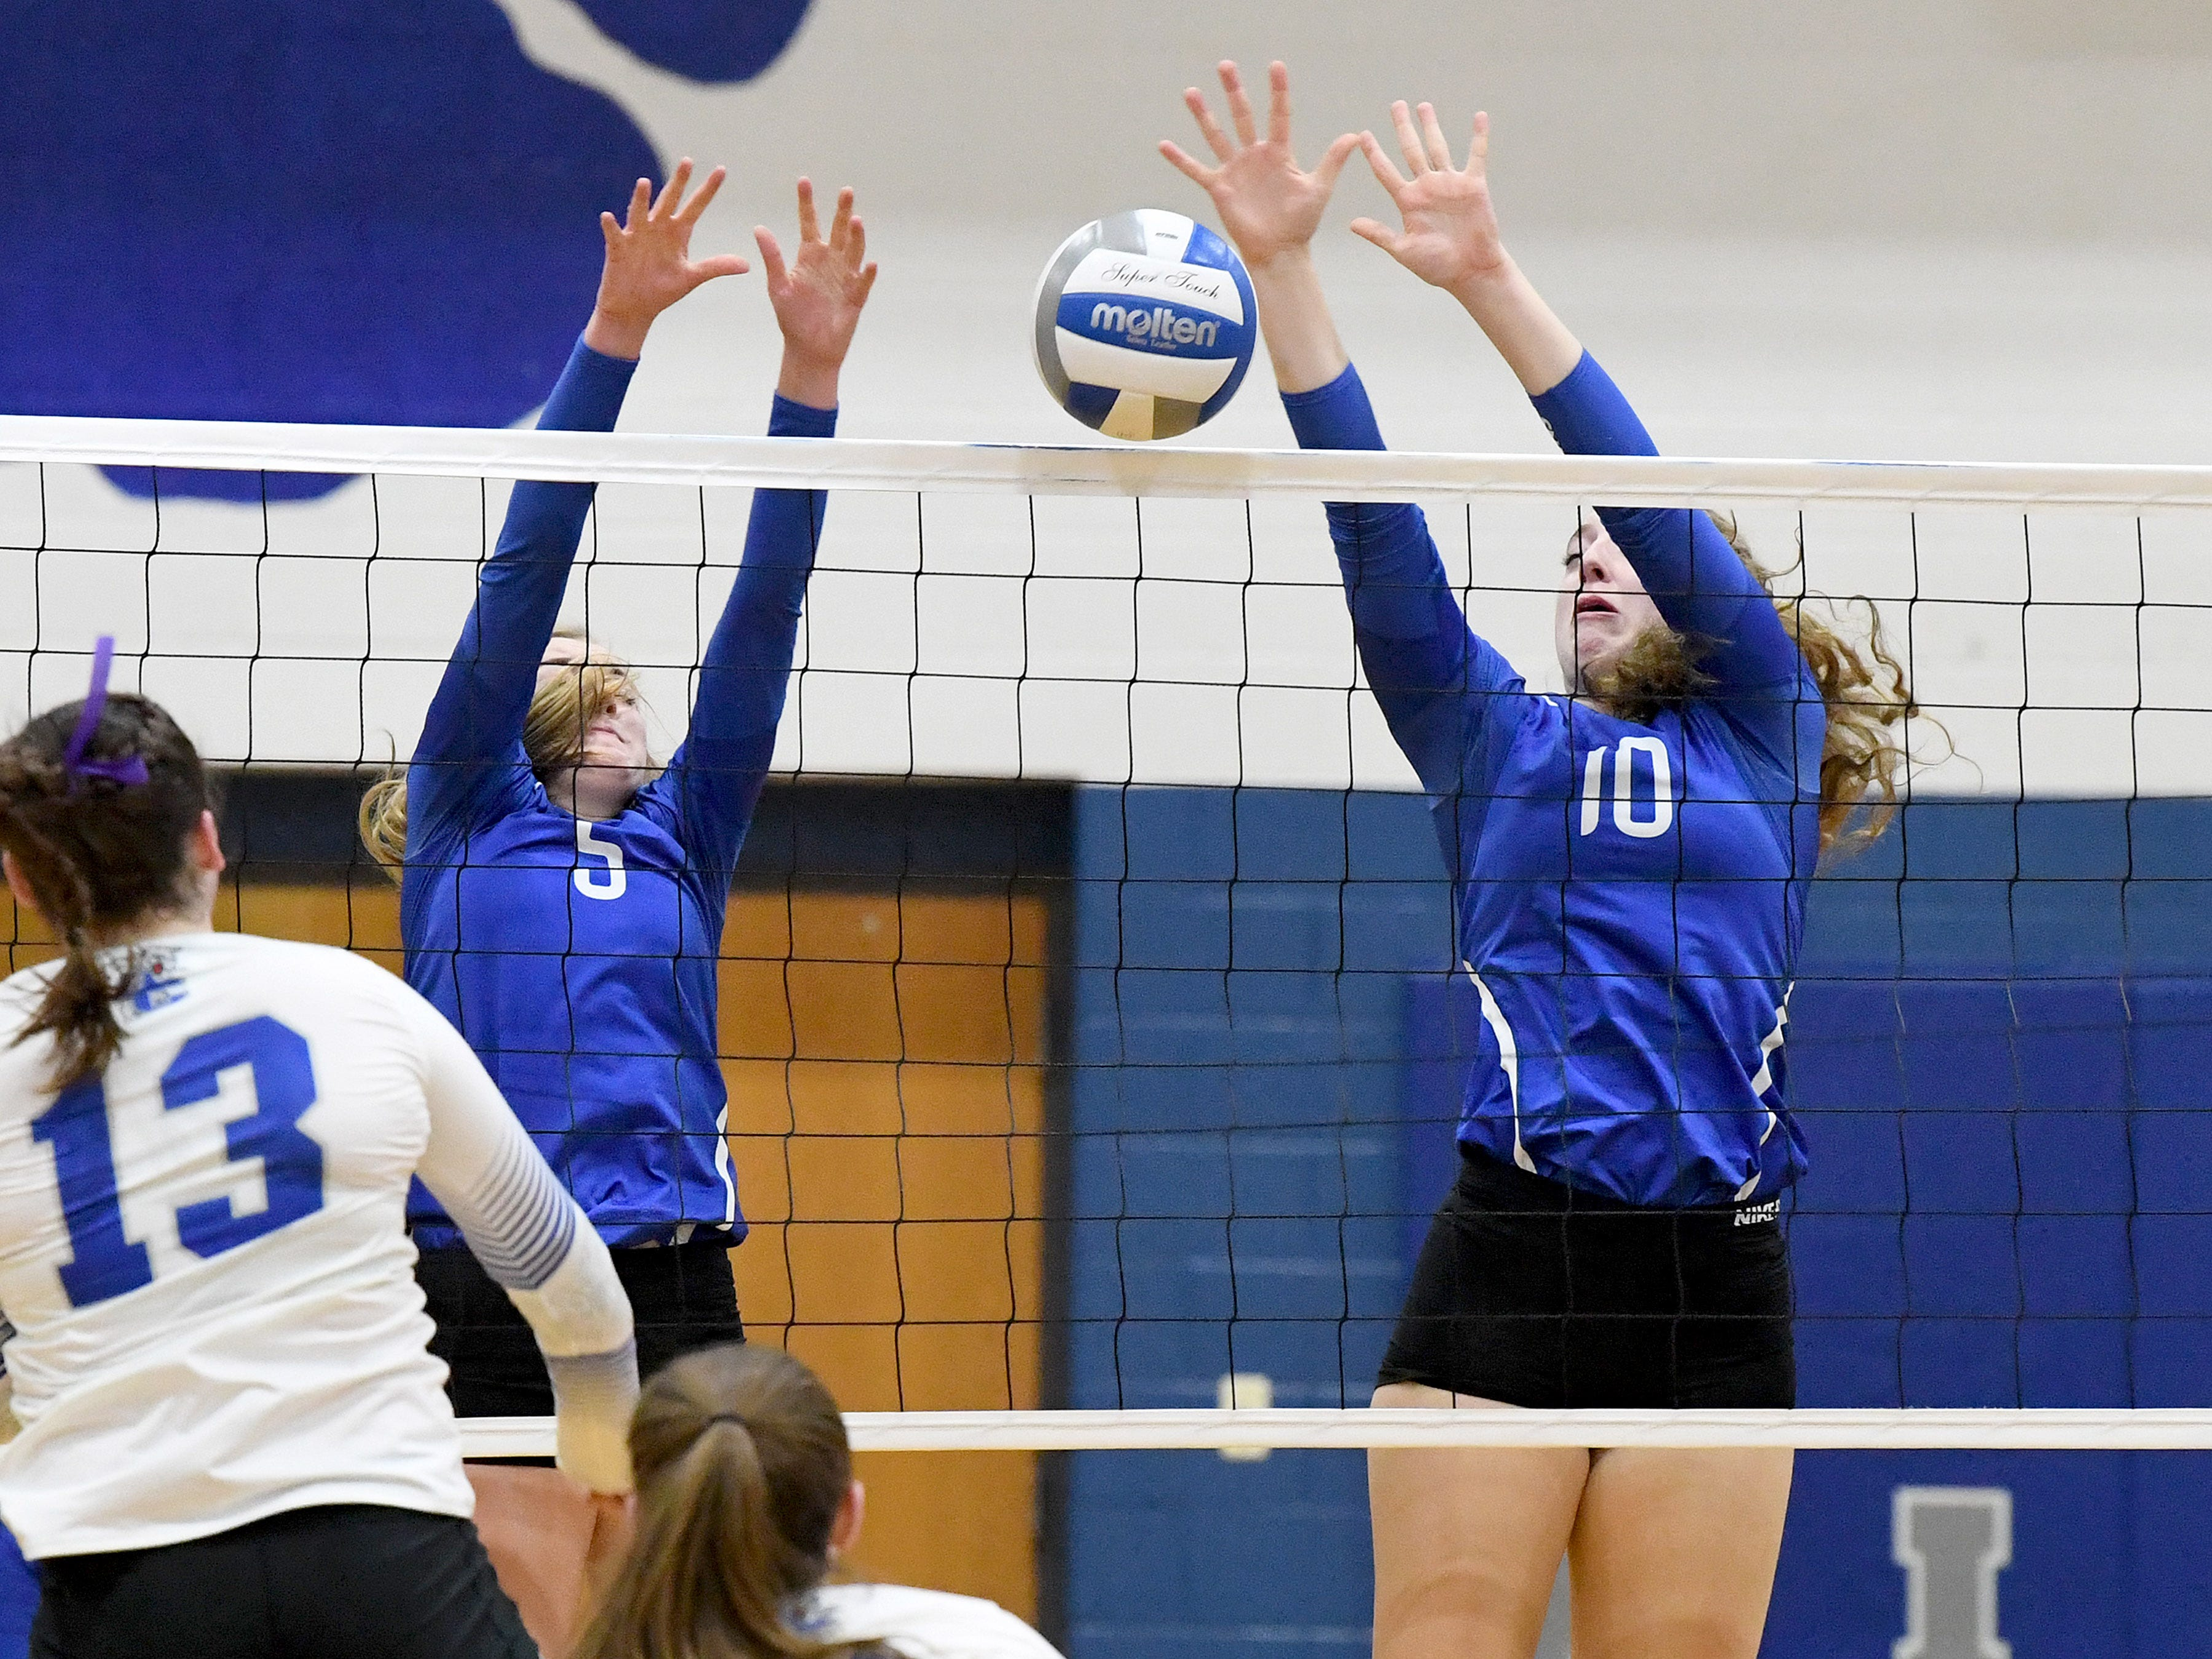 Fort Defiance's Madison Painter and Catie Cramer block a return at the net during a Region 3C semifinal match played in Lexington on Monday, Nov. 5, 2018.